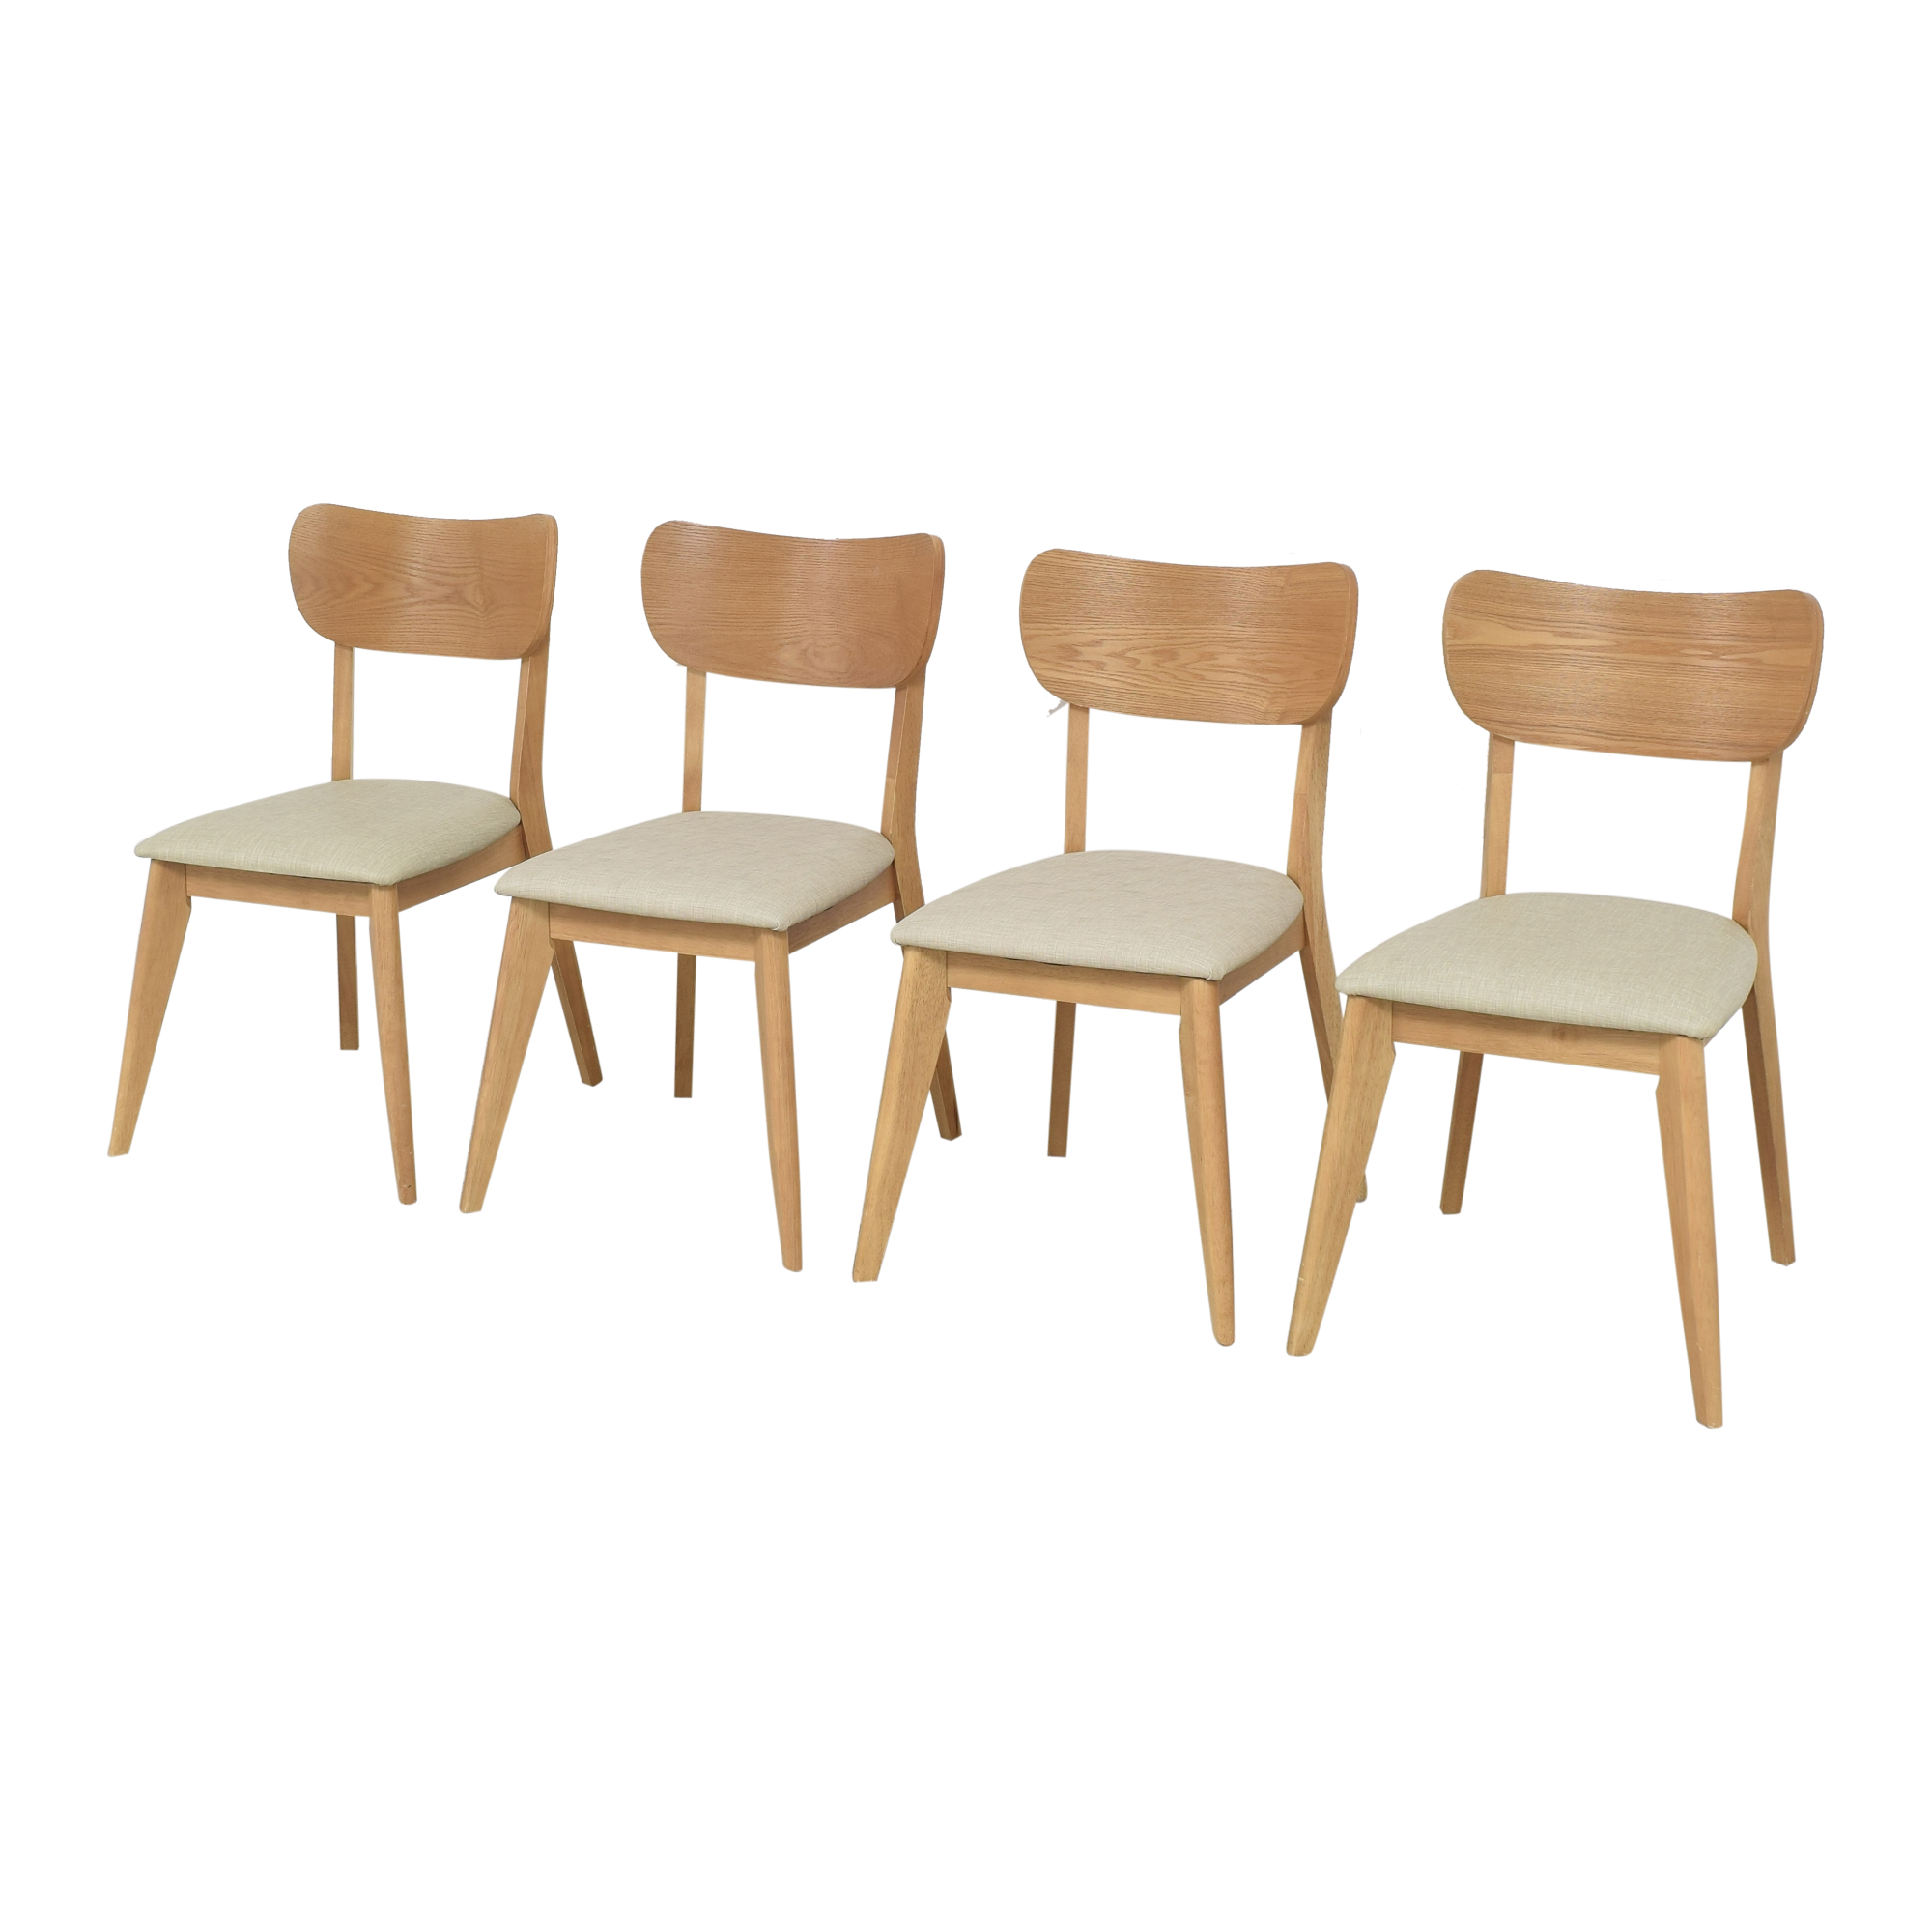 Mid-Century Modern Style Dining Chairs used